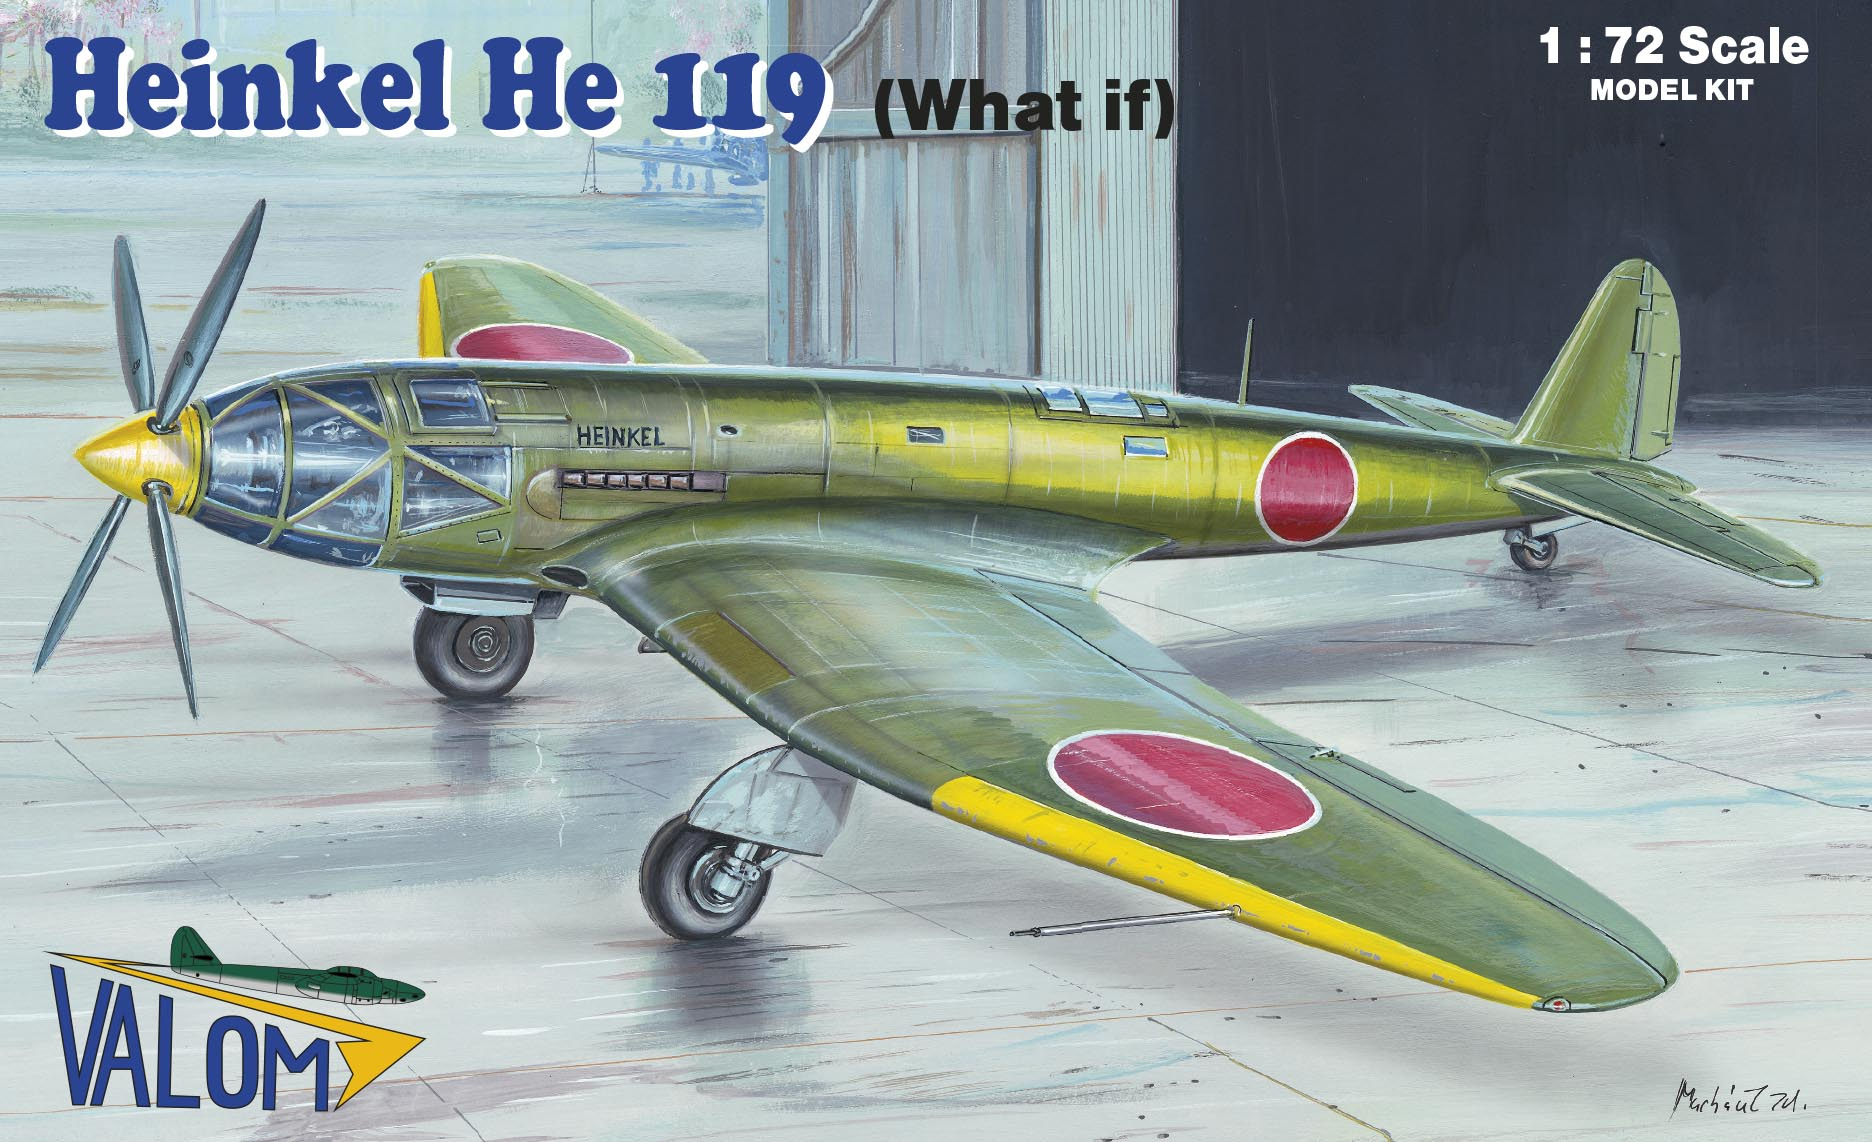 Valom Heinkel He 119 (What if)